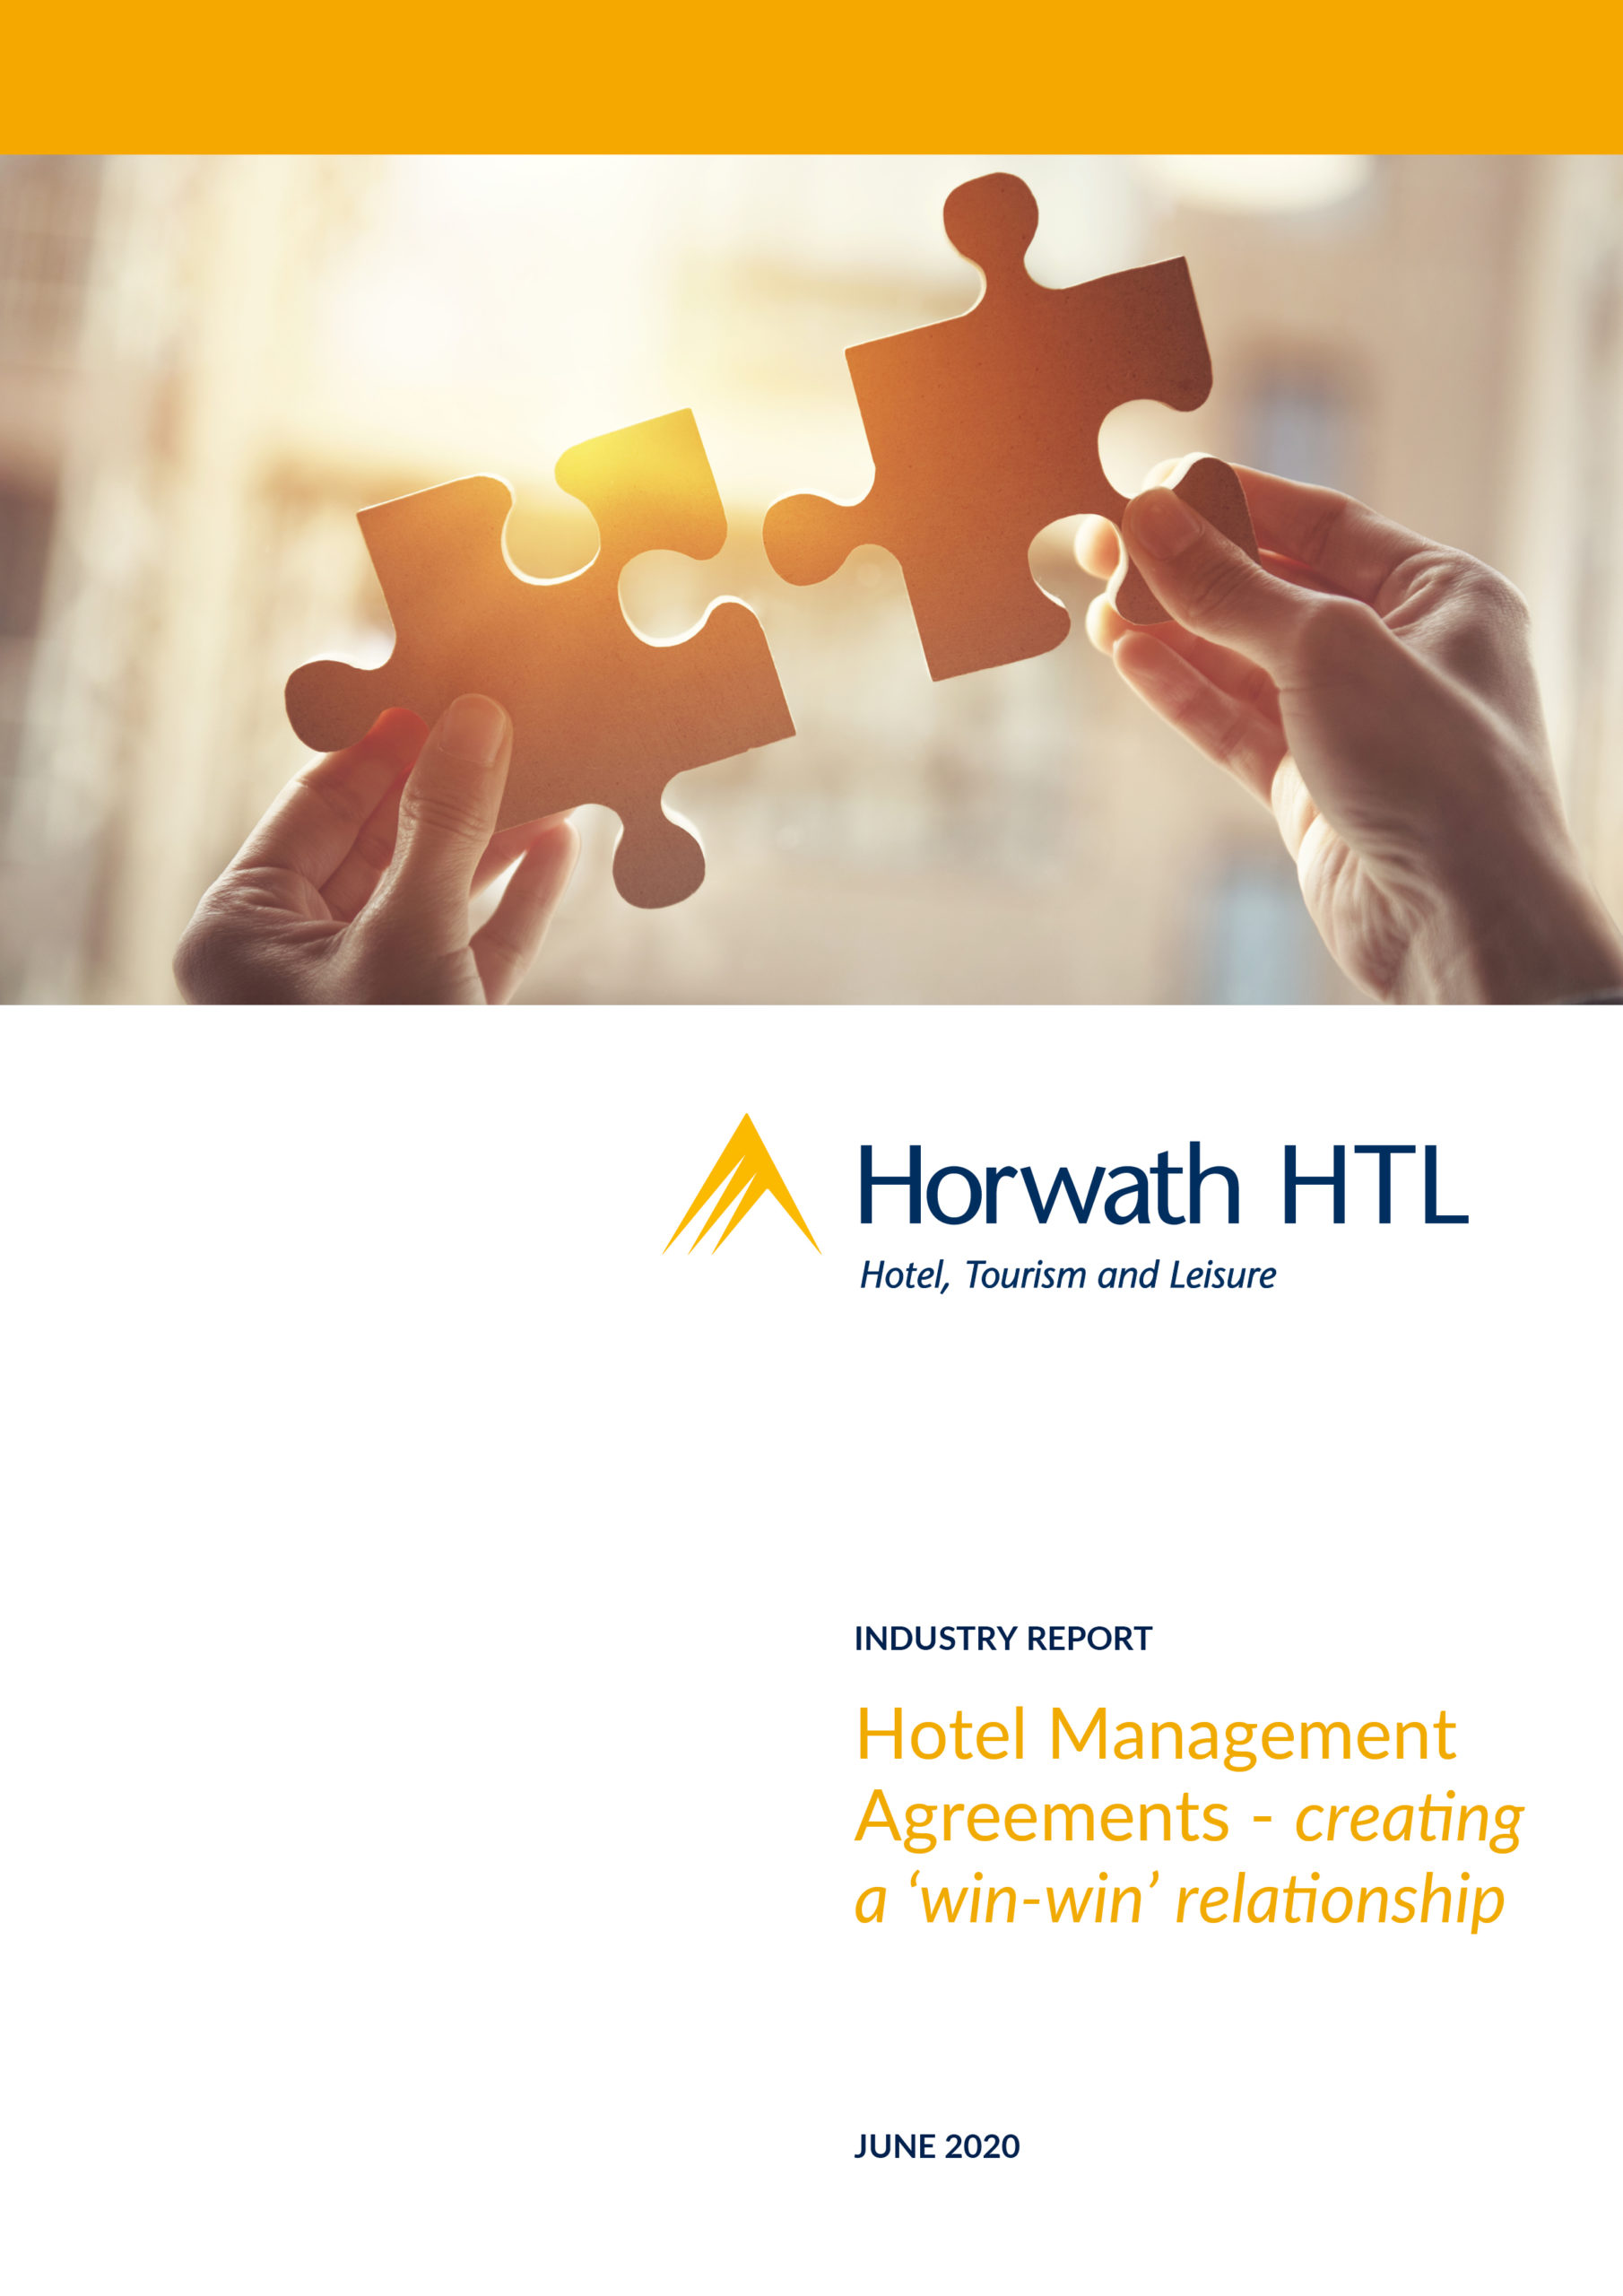 Hotel Management Agreements